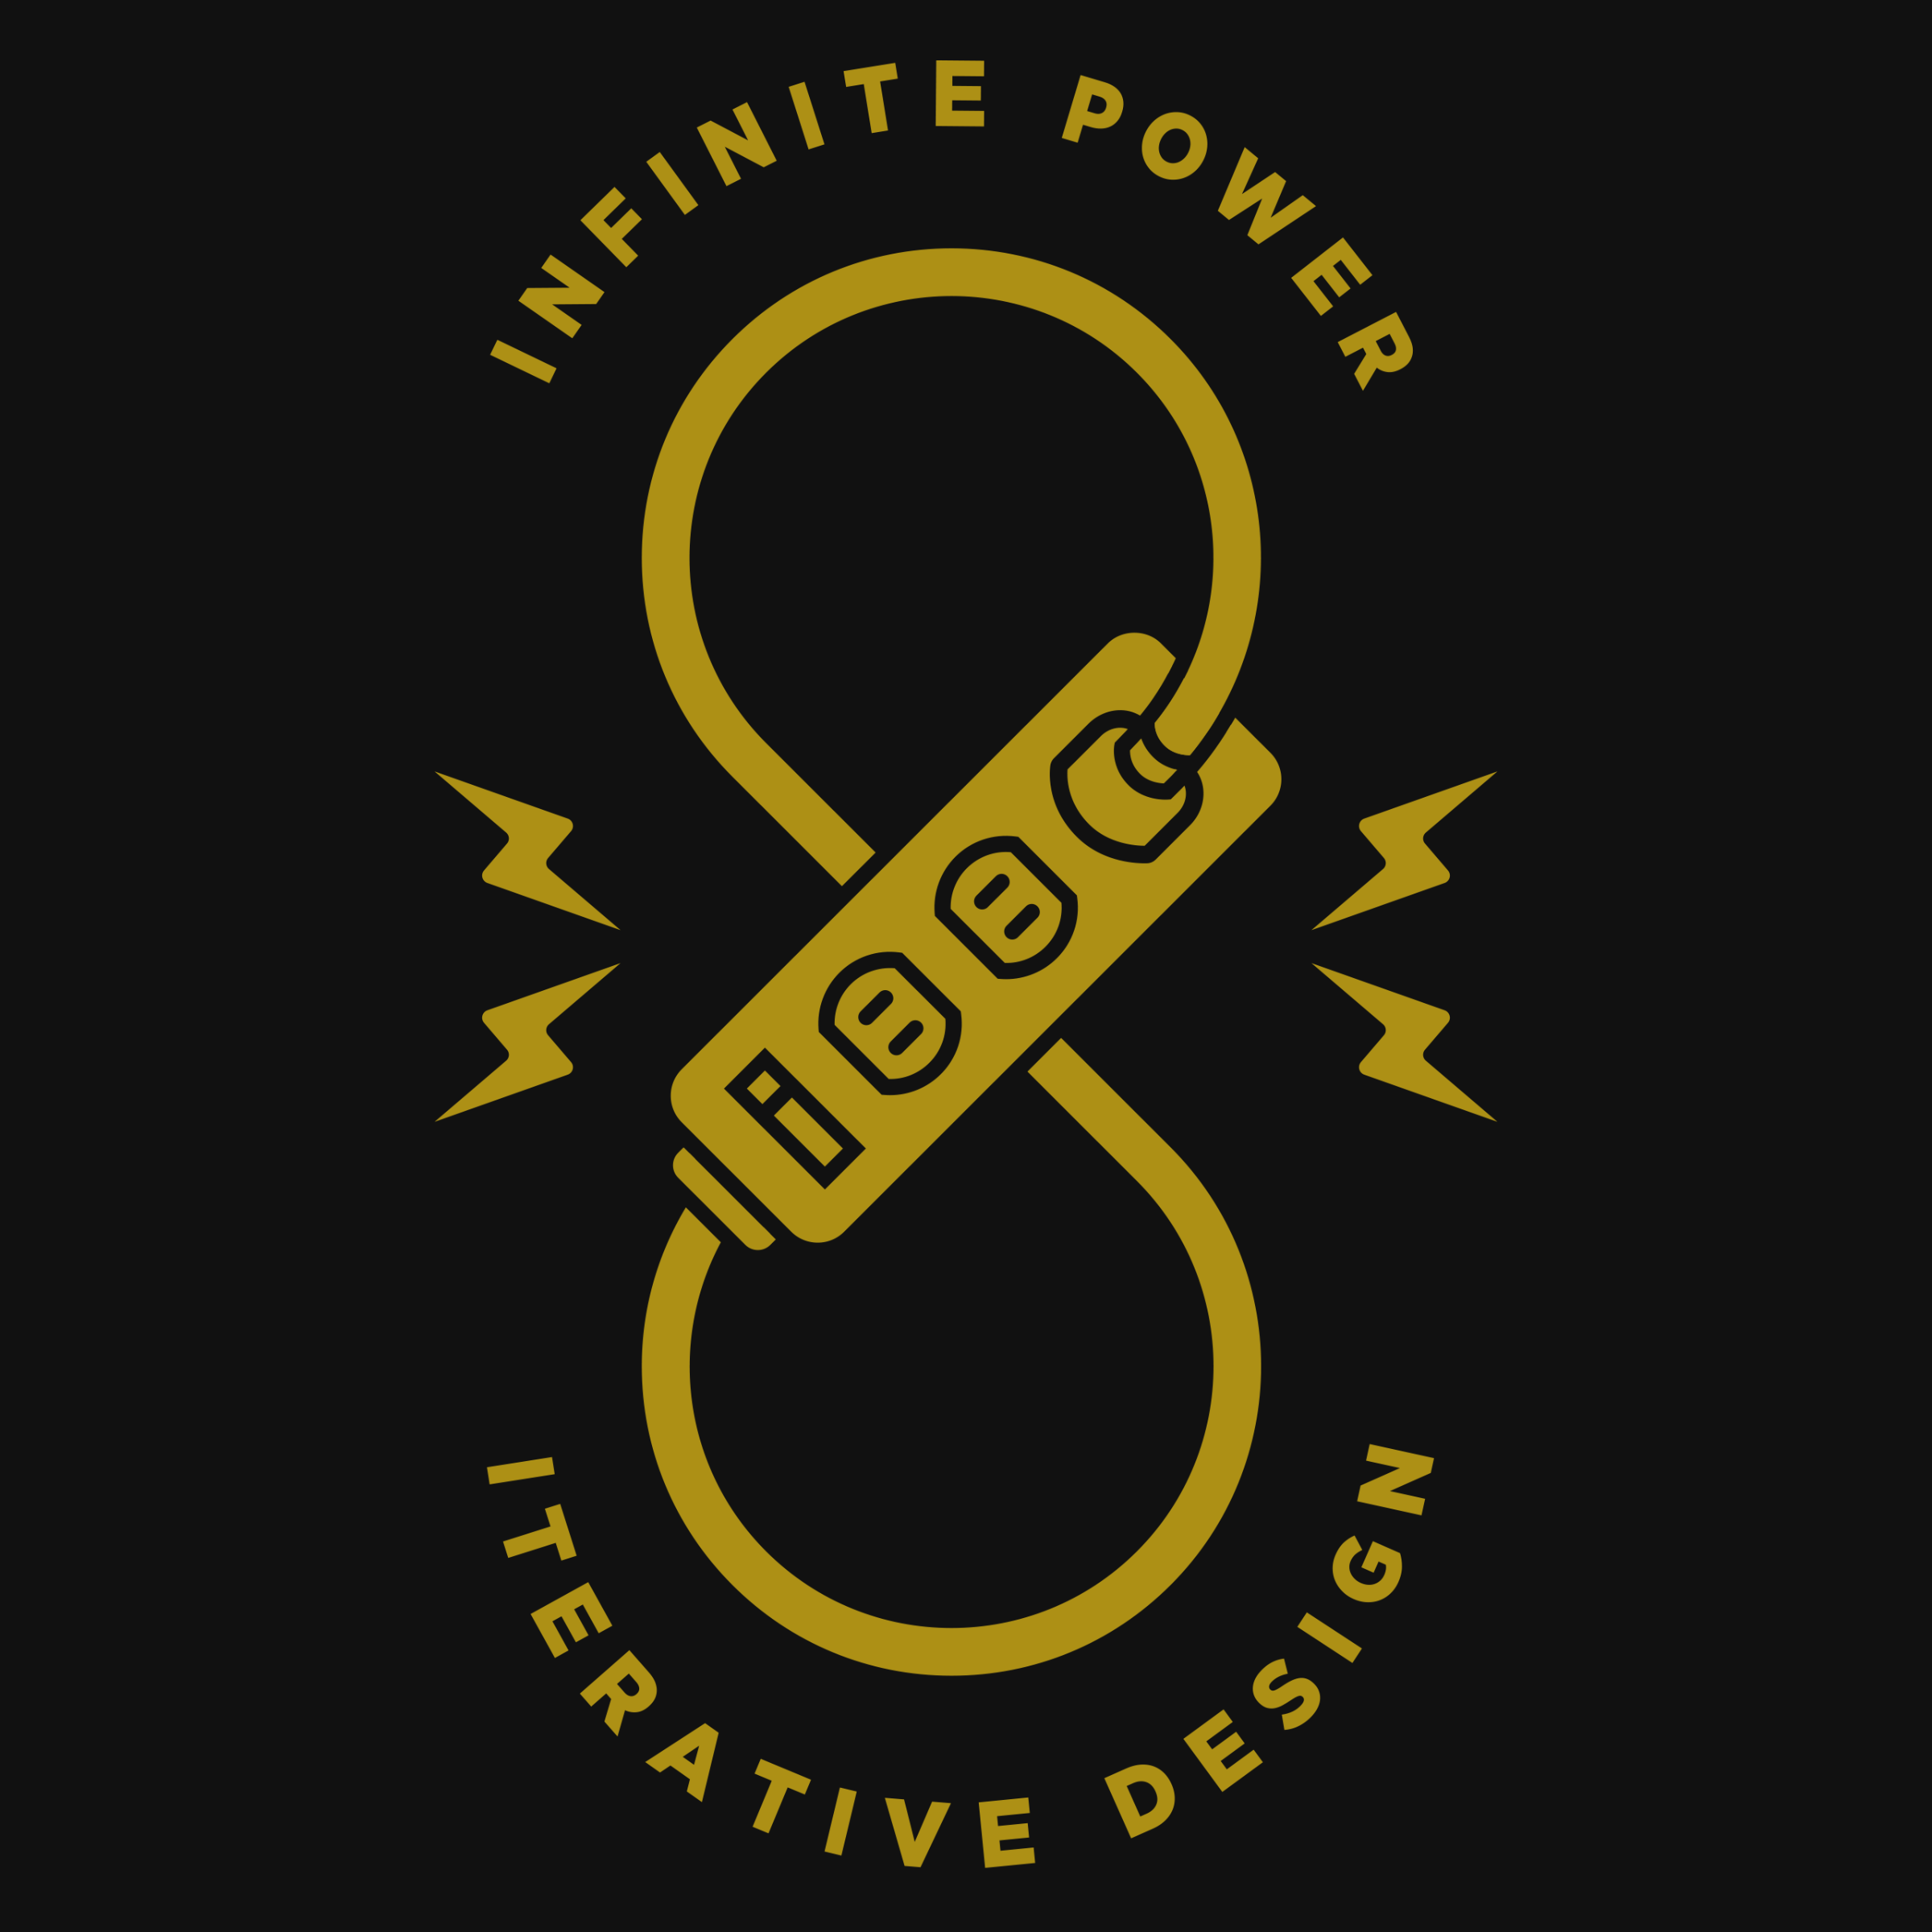 Infinite Power, Iterative Design